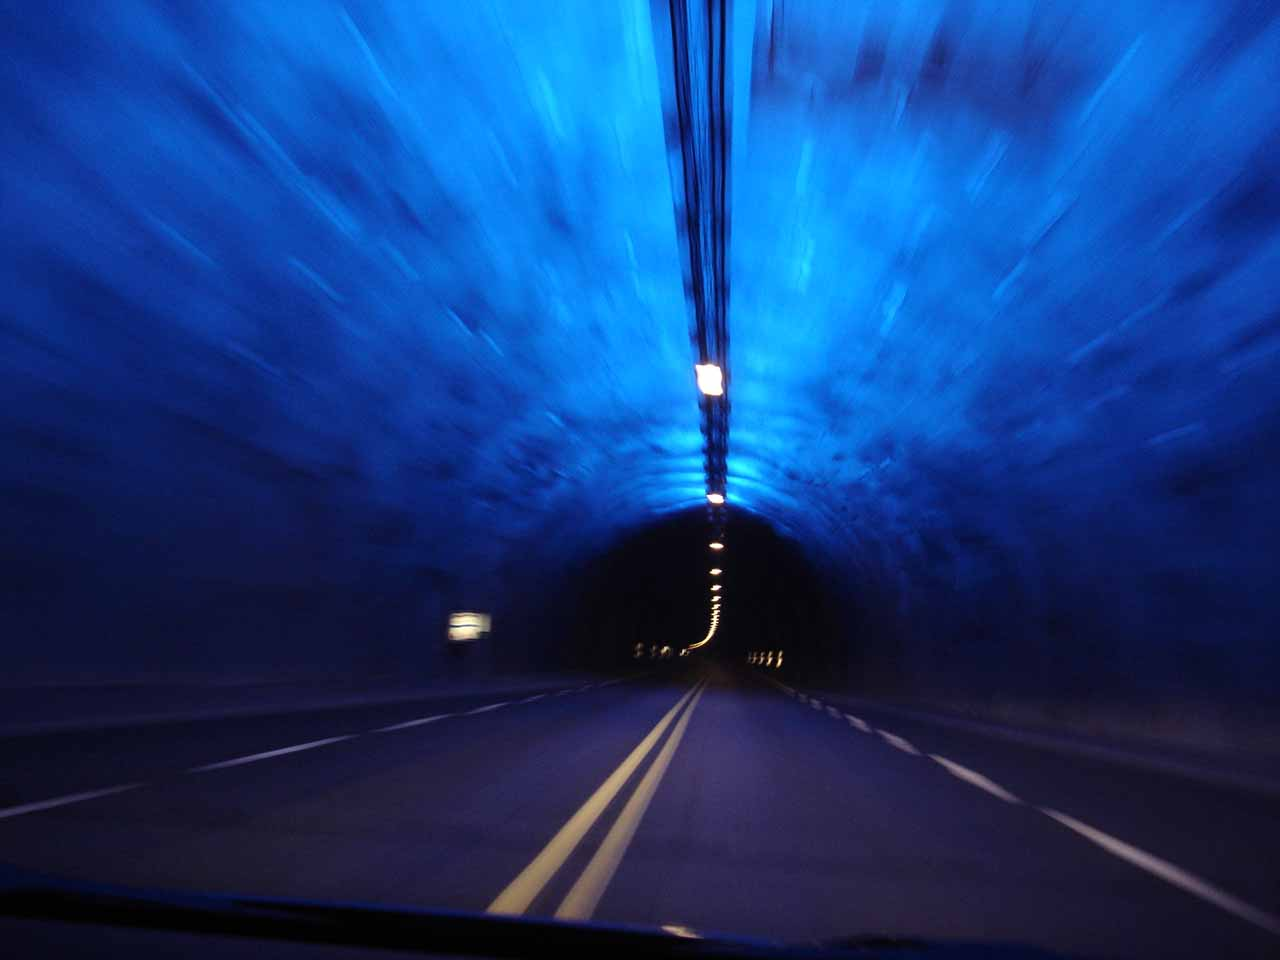 This is a picture inside one of the two blue-lit 'ice' sections of the Lærdal Tunnel, which was one of the longest tunnels in the world at 24km. The 'ice' sections helped to break up road fatigue